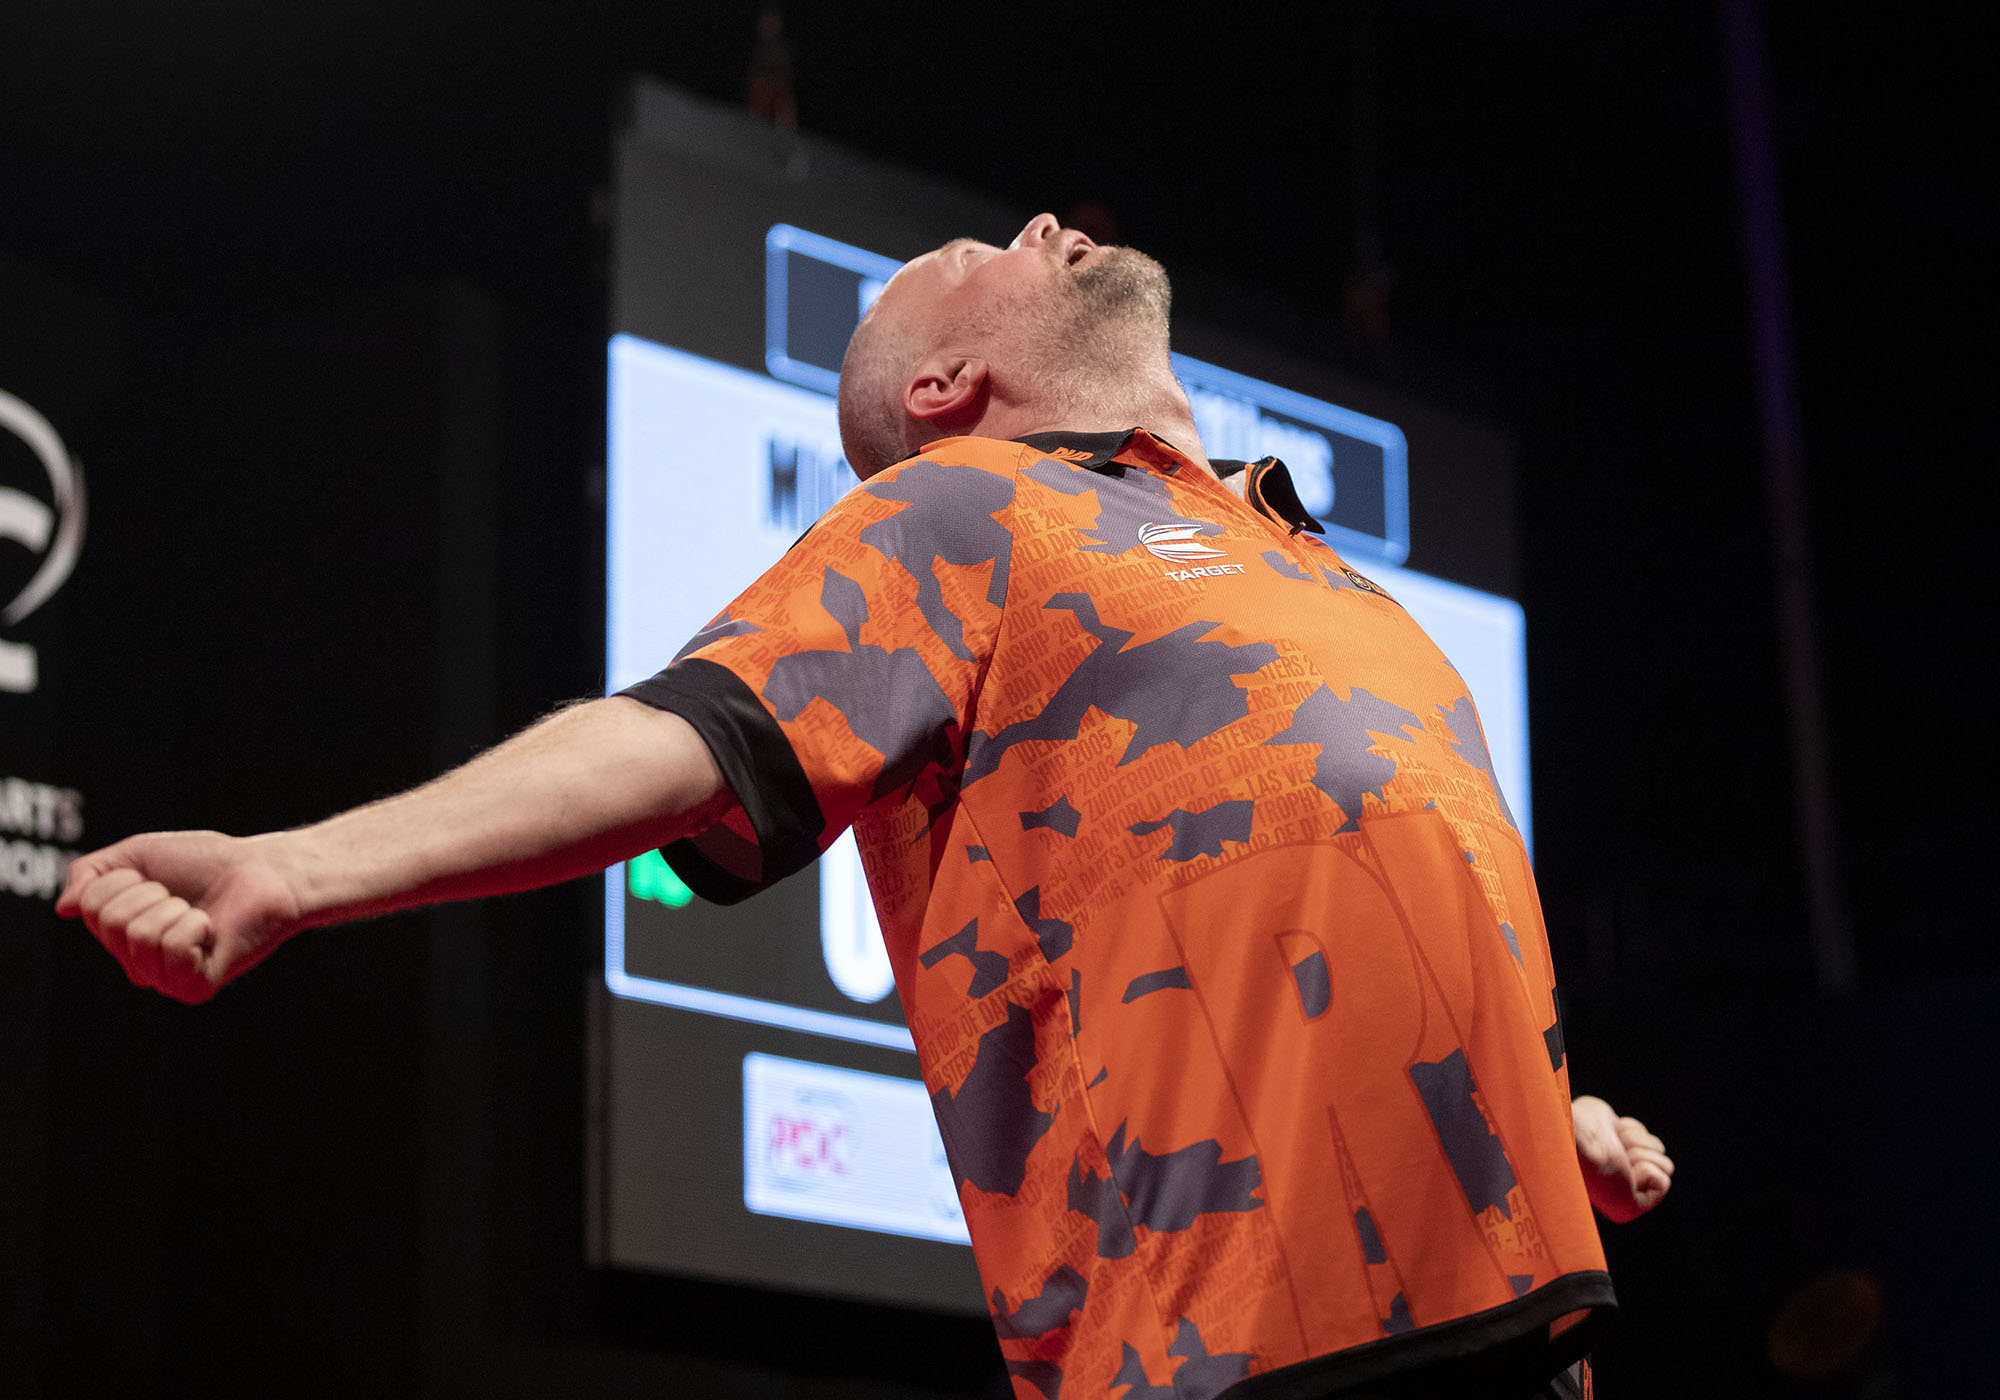 Van Barneveld Wins First Title Since 2013 With Stunning Return To Pro Darts